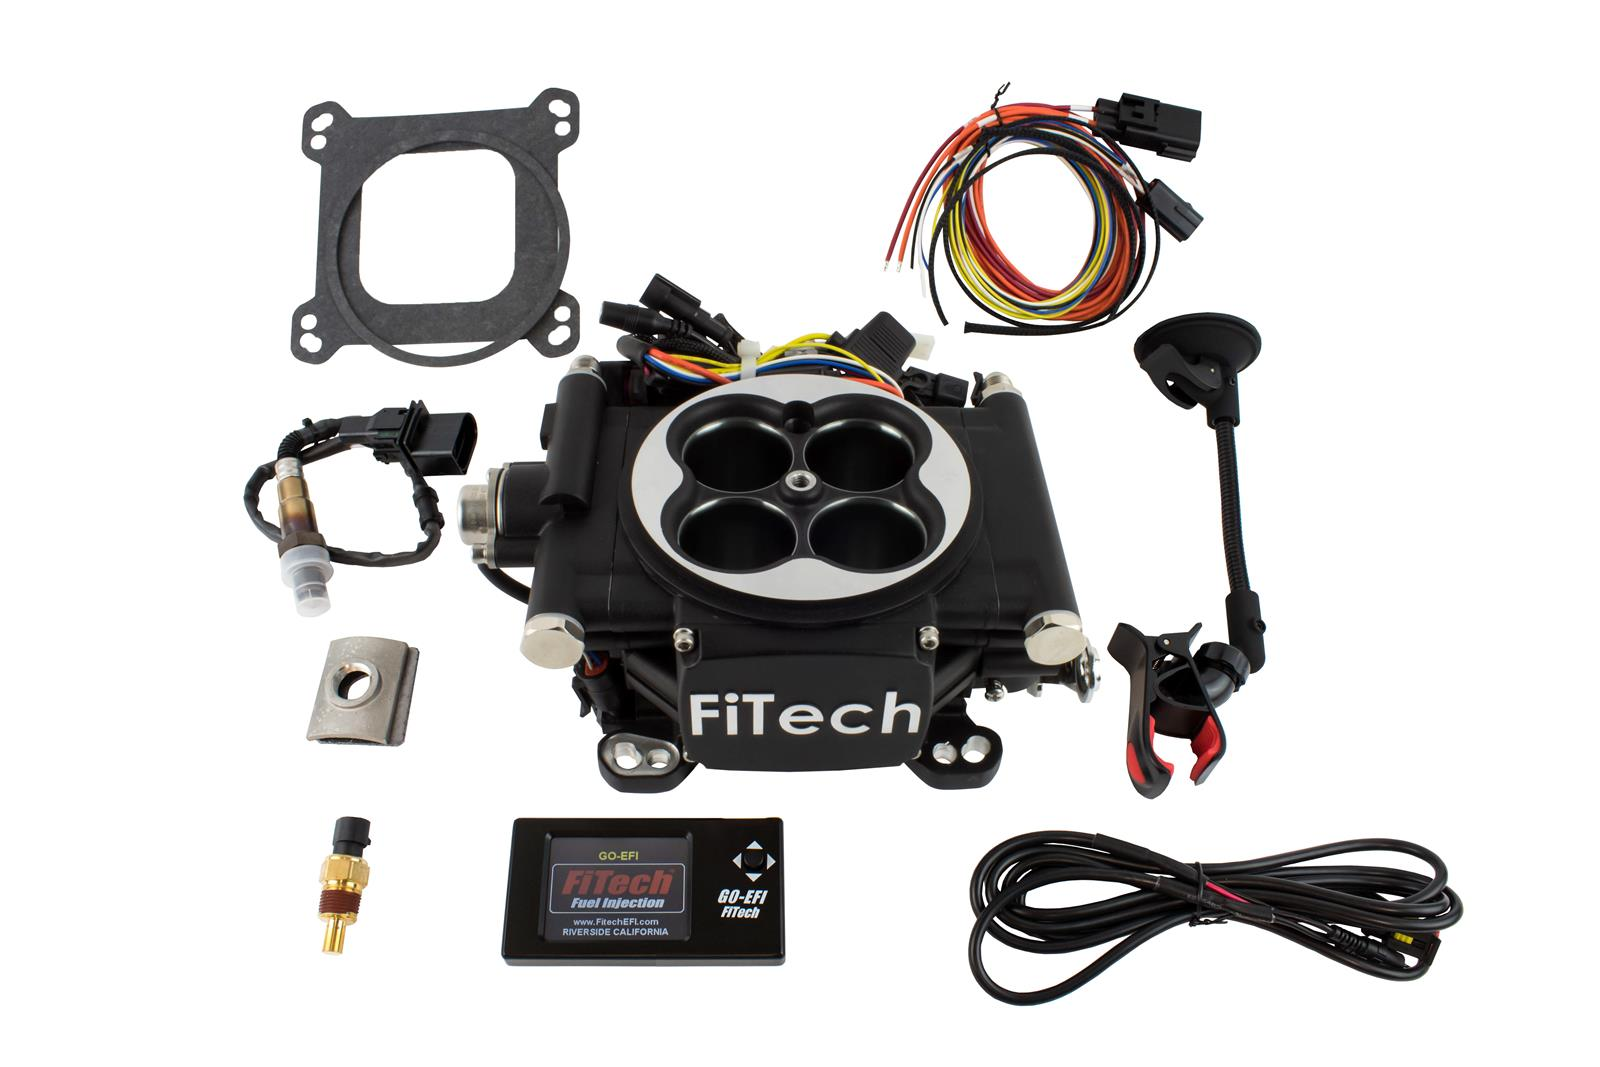 hight resolution of fitech go efi 4 600 hp self tuning fuel injection systems 30002 free shipping on orders over 99 at summit racing